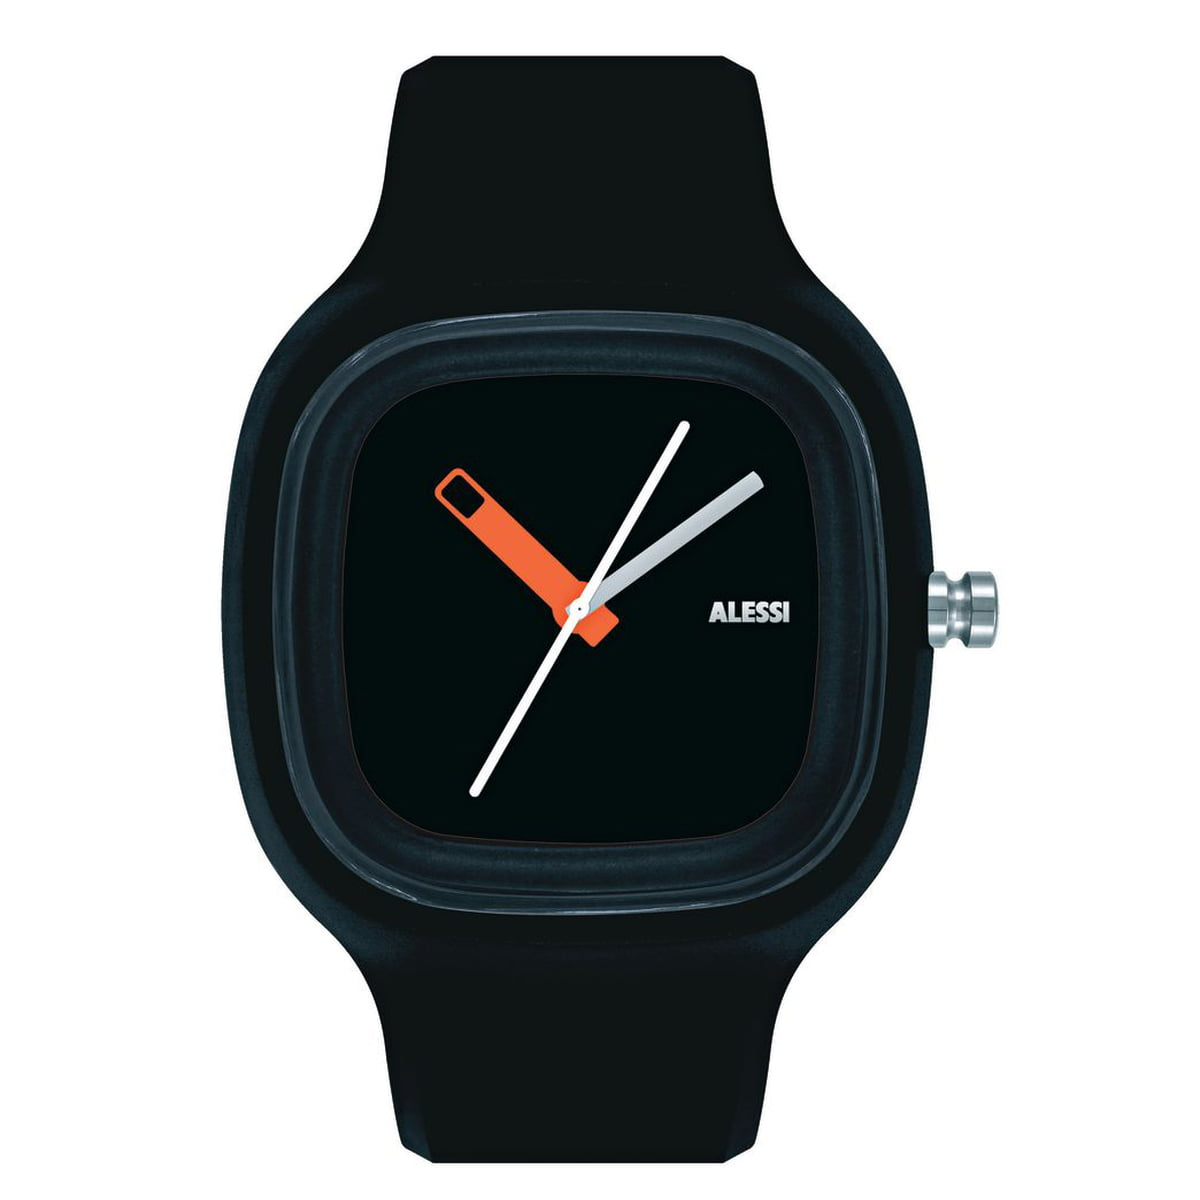 alessi watches in the home design shop -  alessi watches  kaj watch